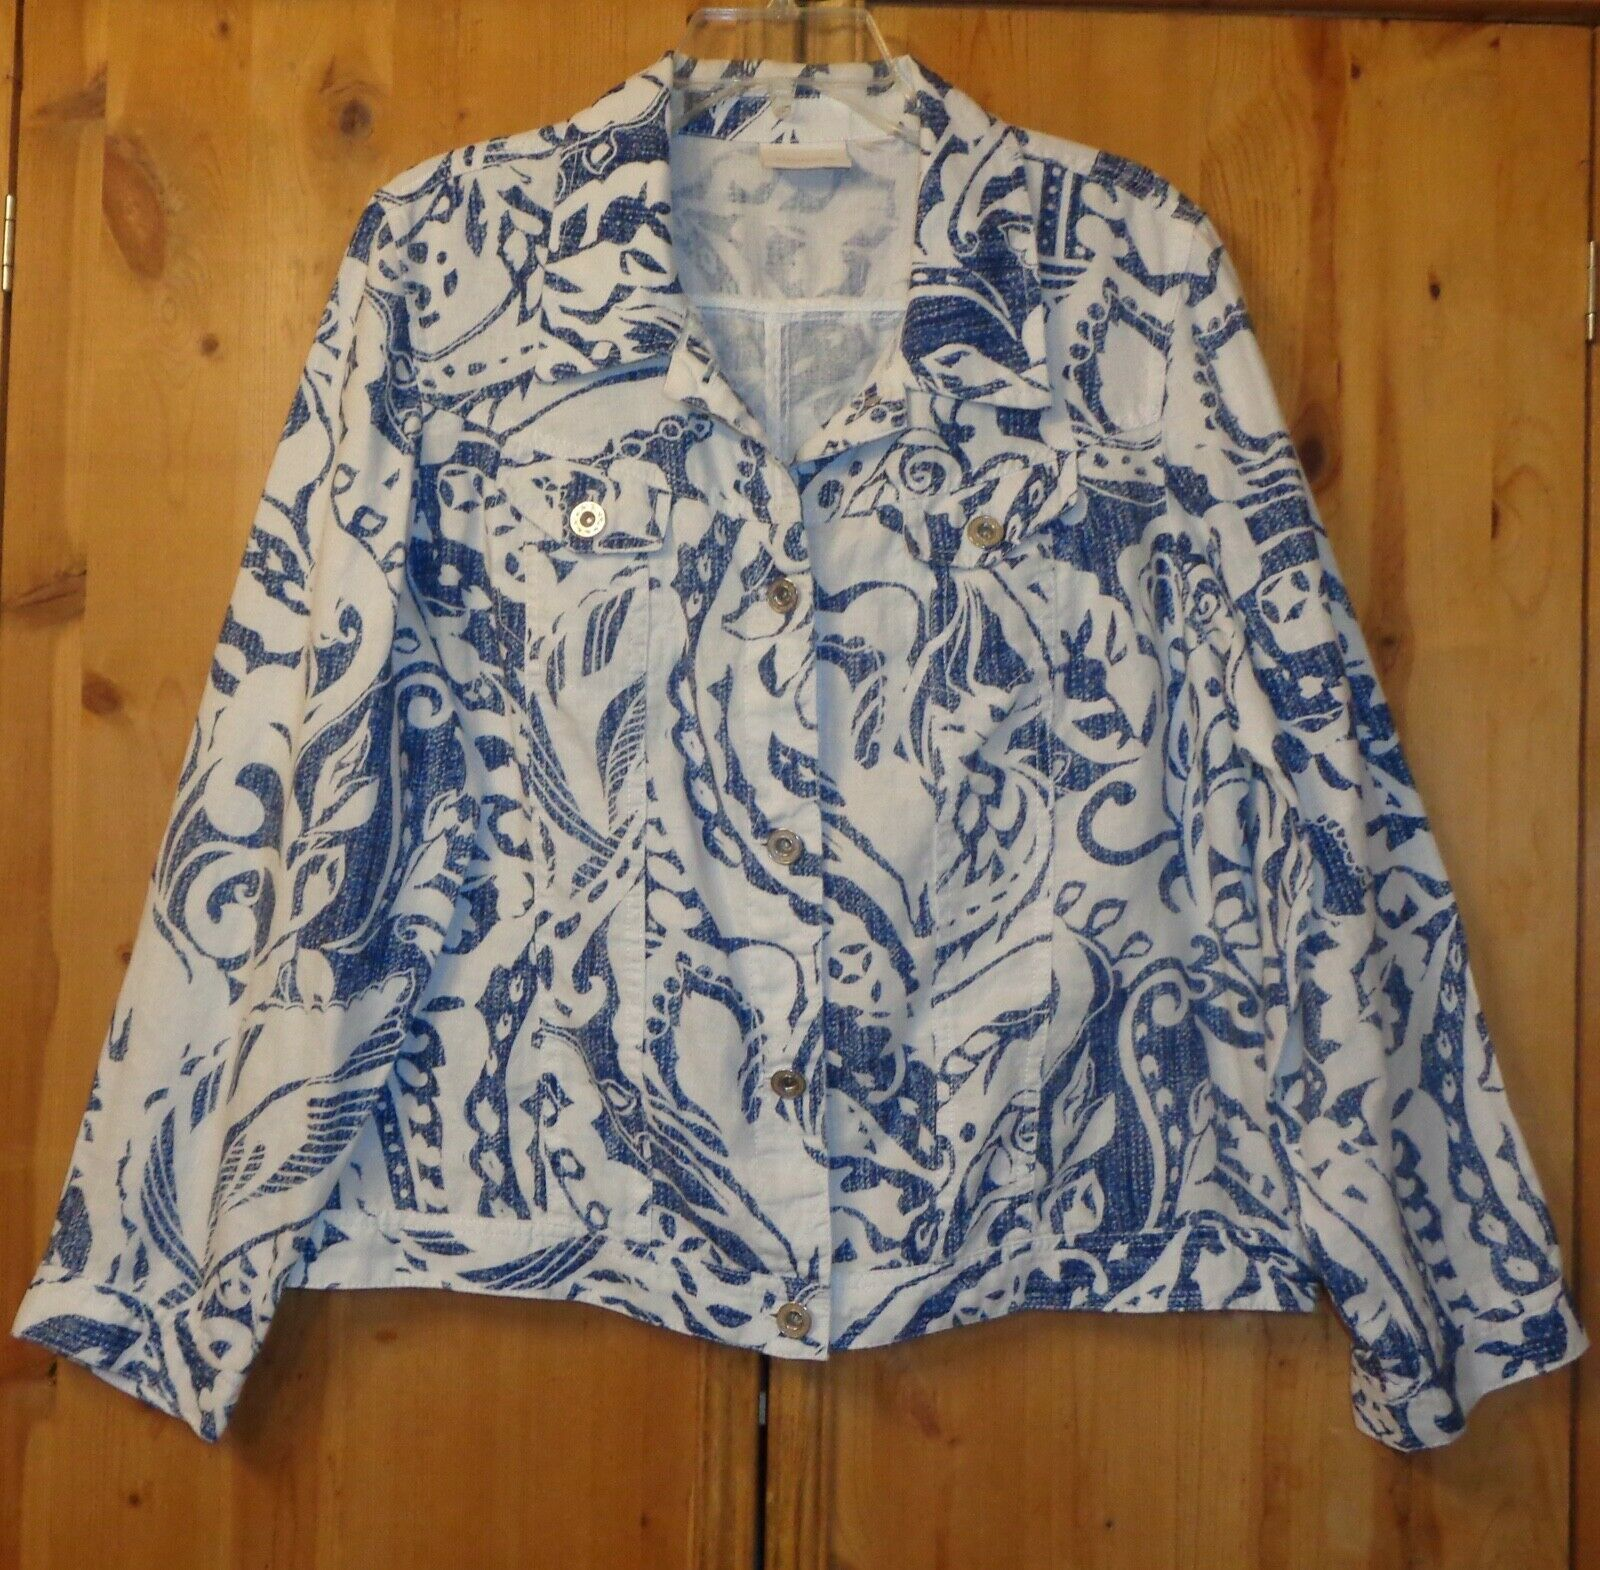 WHITE WITH BLUE PAISLEY PRINT LINEN JACKET FROM CHICO S SIZE 3 - $9.99